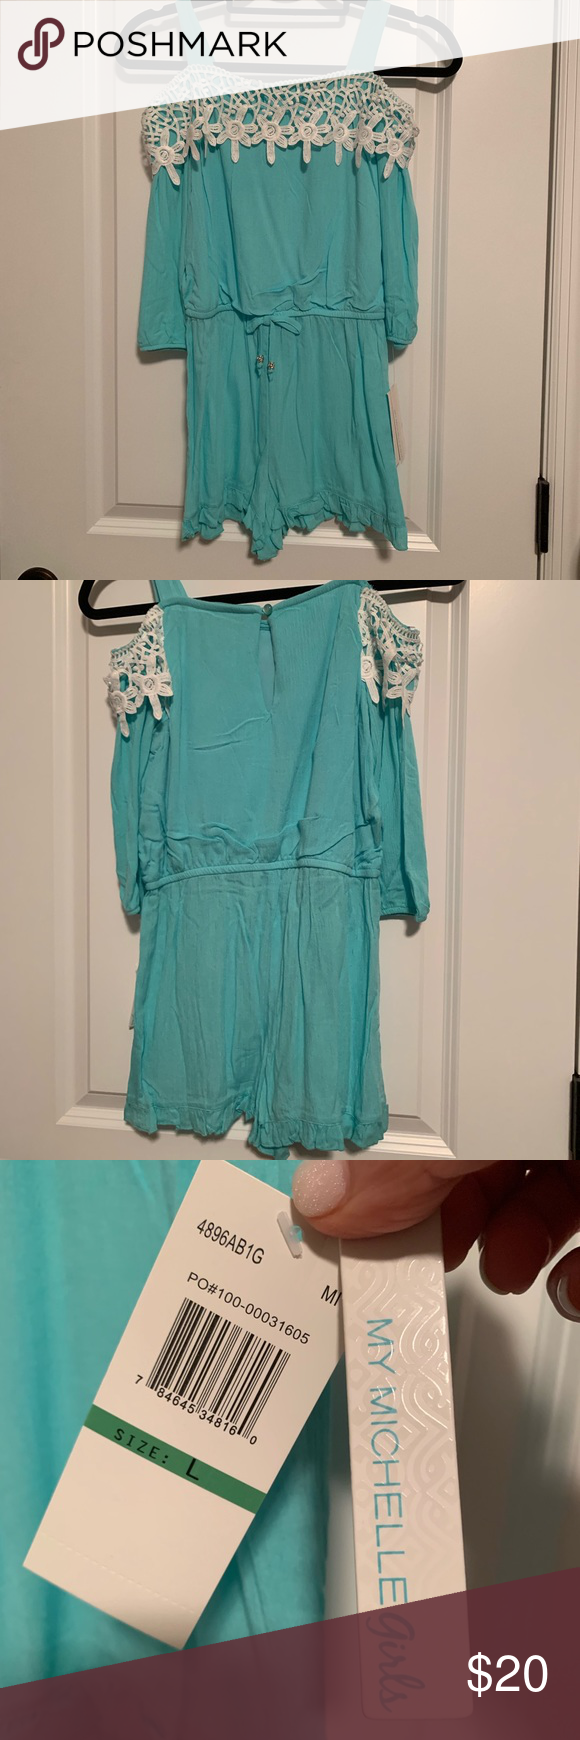 24a41eaefff Girls cold shoulder romper New My Michelle girls cold shoulder romper with  lace trim and tie waist. Mint color. My Michelle Dresses Casual